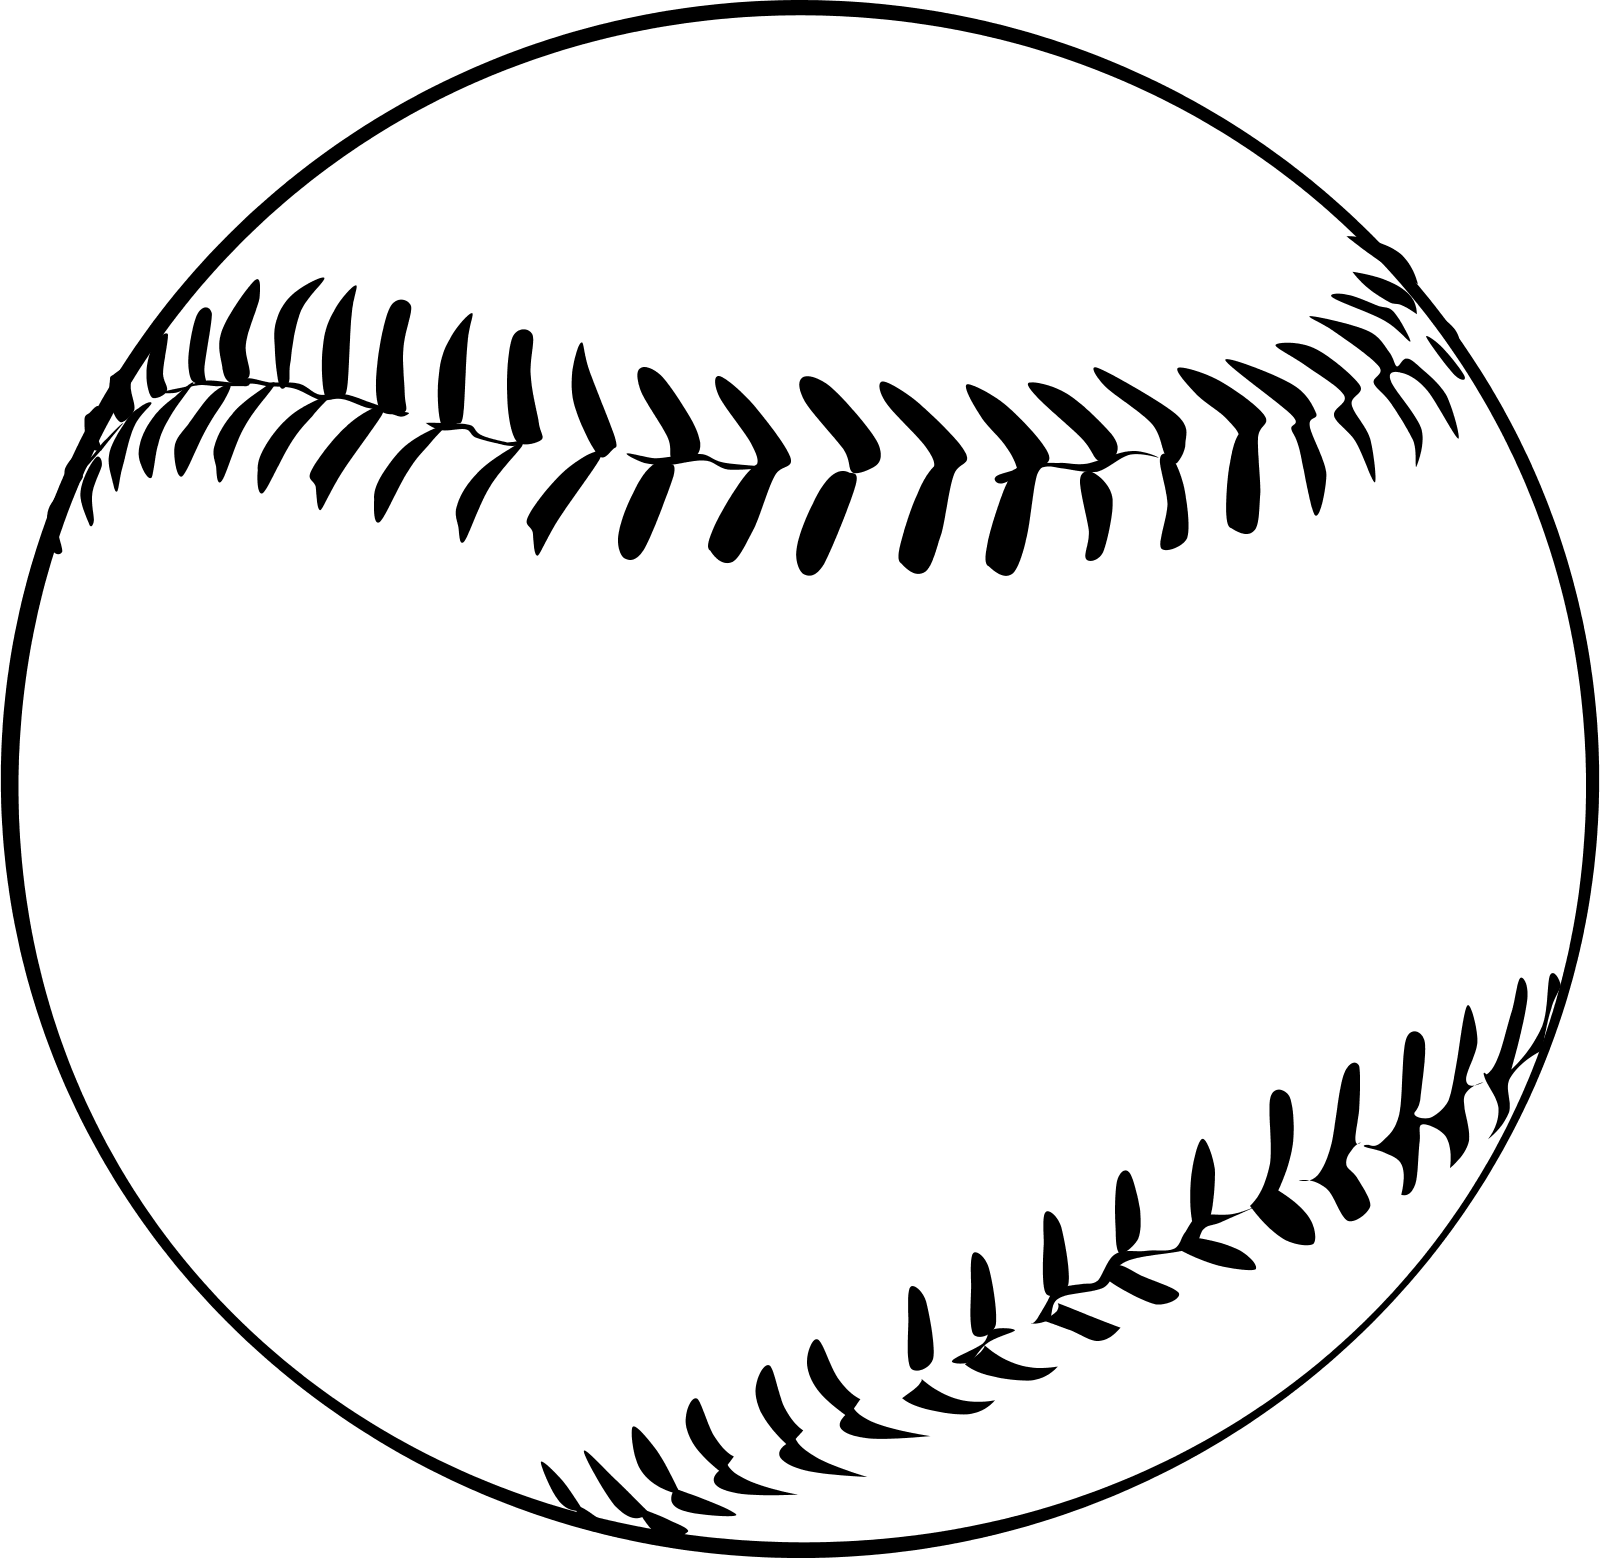 Impeccable image for baseball template printable